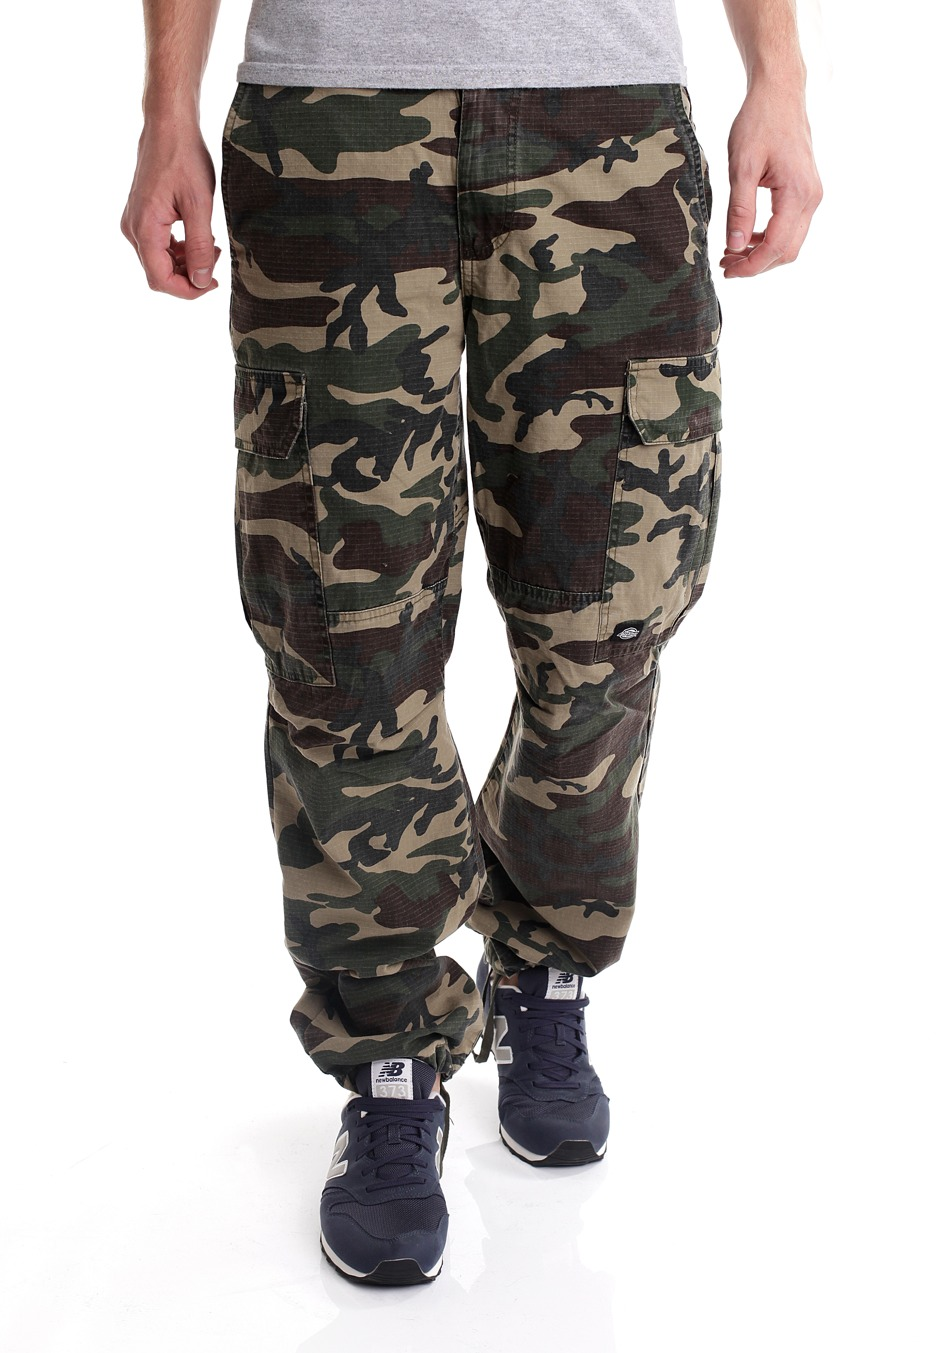 The Adidas Camo Chino Pants are a workwear inspired chino that deliver an authentic adidas look with the durability and flex skate demands. 98/2 Cotton-elastane blend, Regular fit men's pants Front slip-in pockets, back welt pockets.